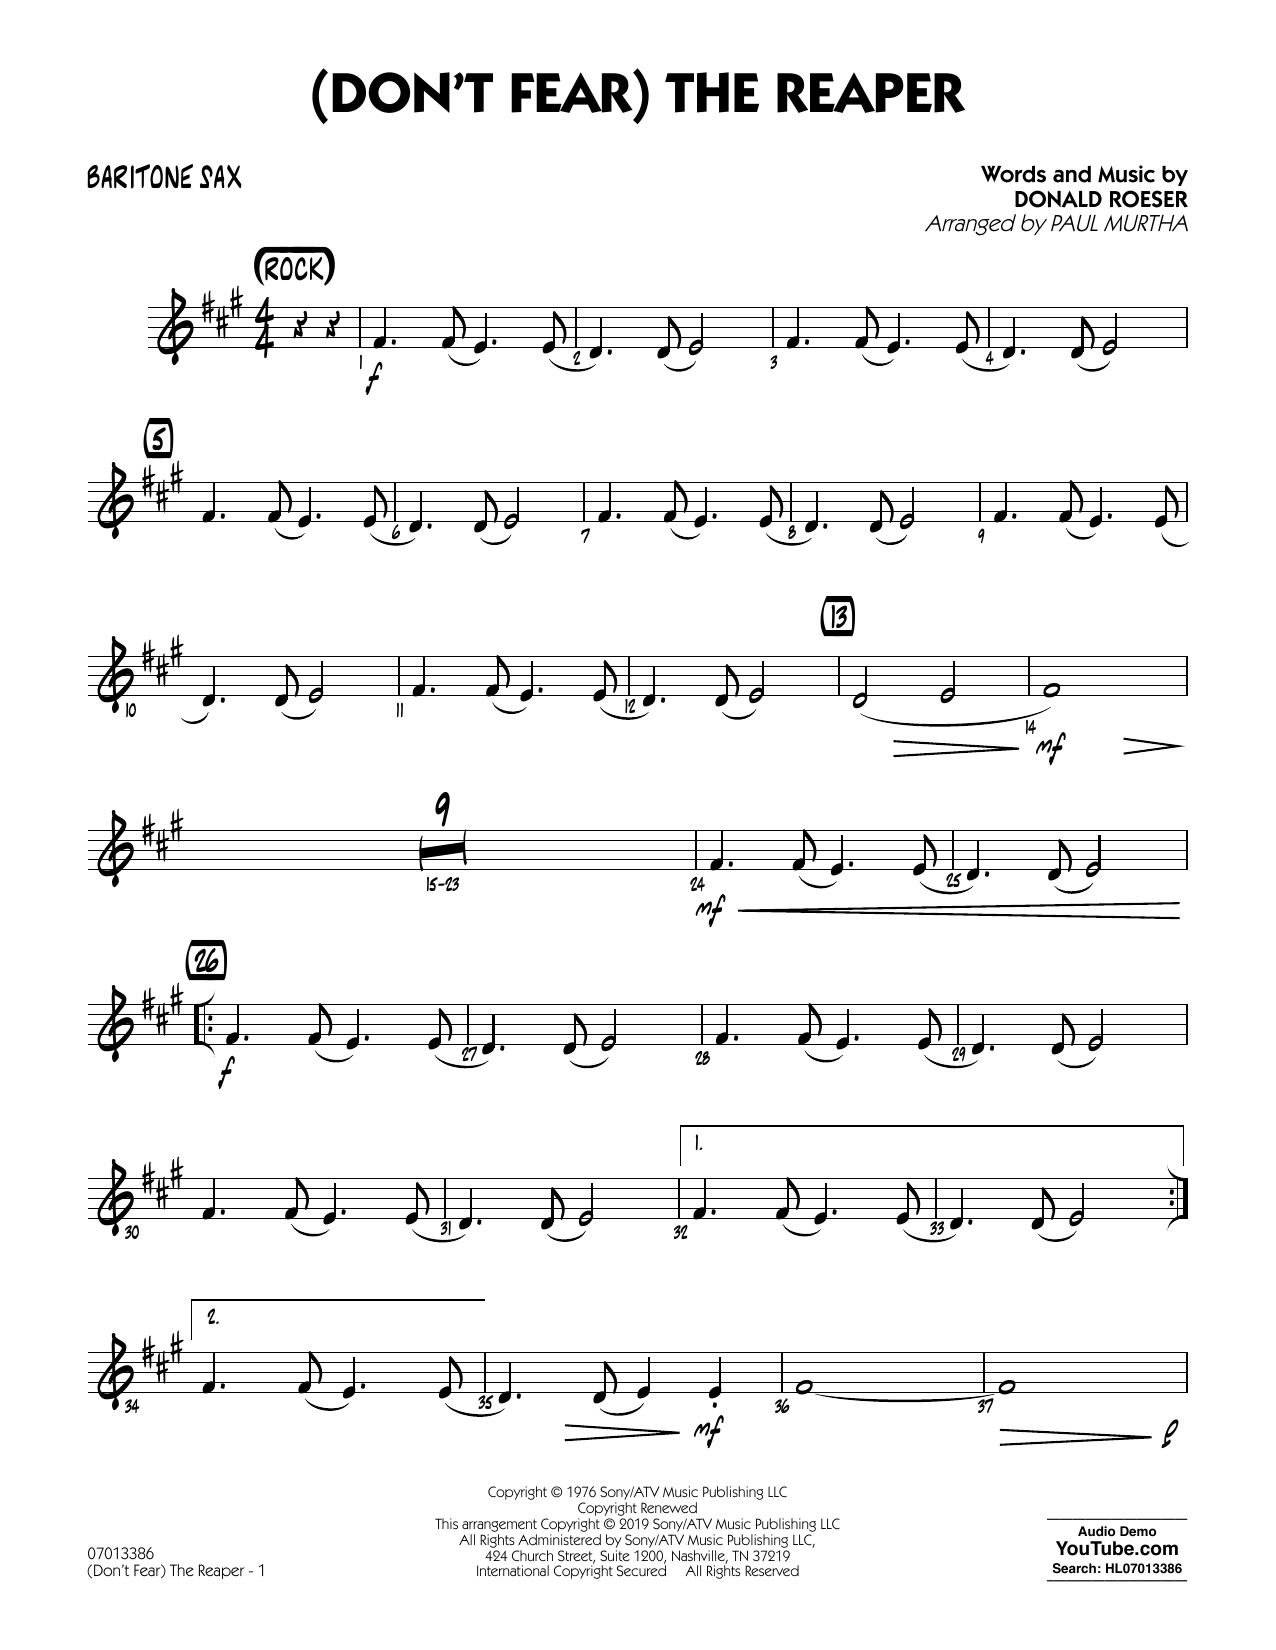 Blue Oyster Cult (Don't Fear) The Reaper (arr. Paul Murtha) - Baritone Sax sheet music preview music notes and score for Jazz Ensemble including 2 page(s)